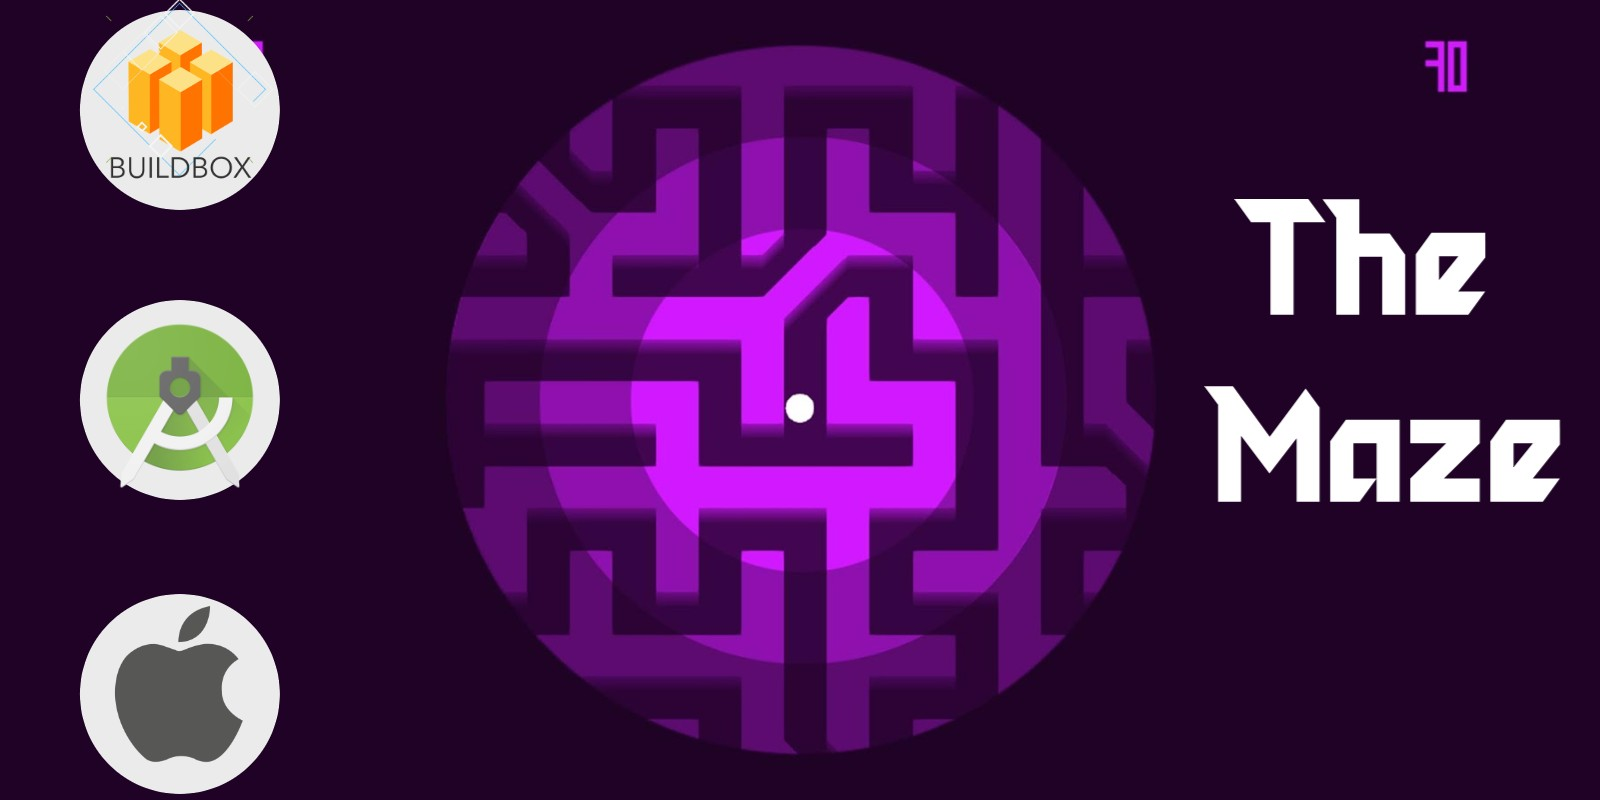 The Maze Full Buildbox Game